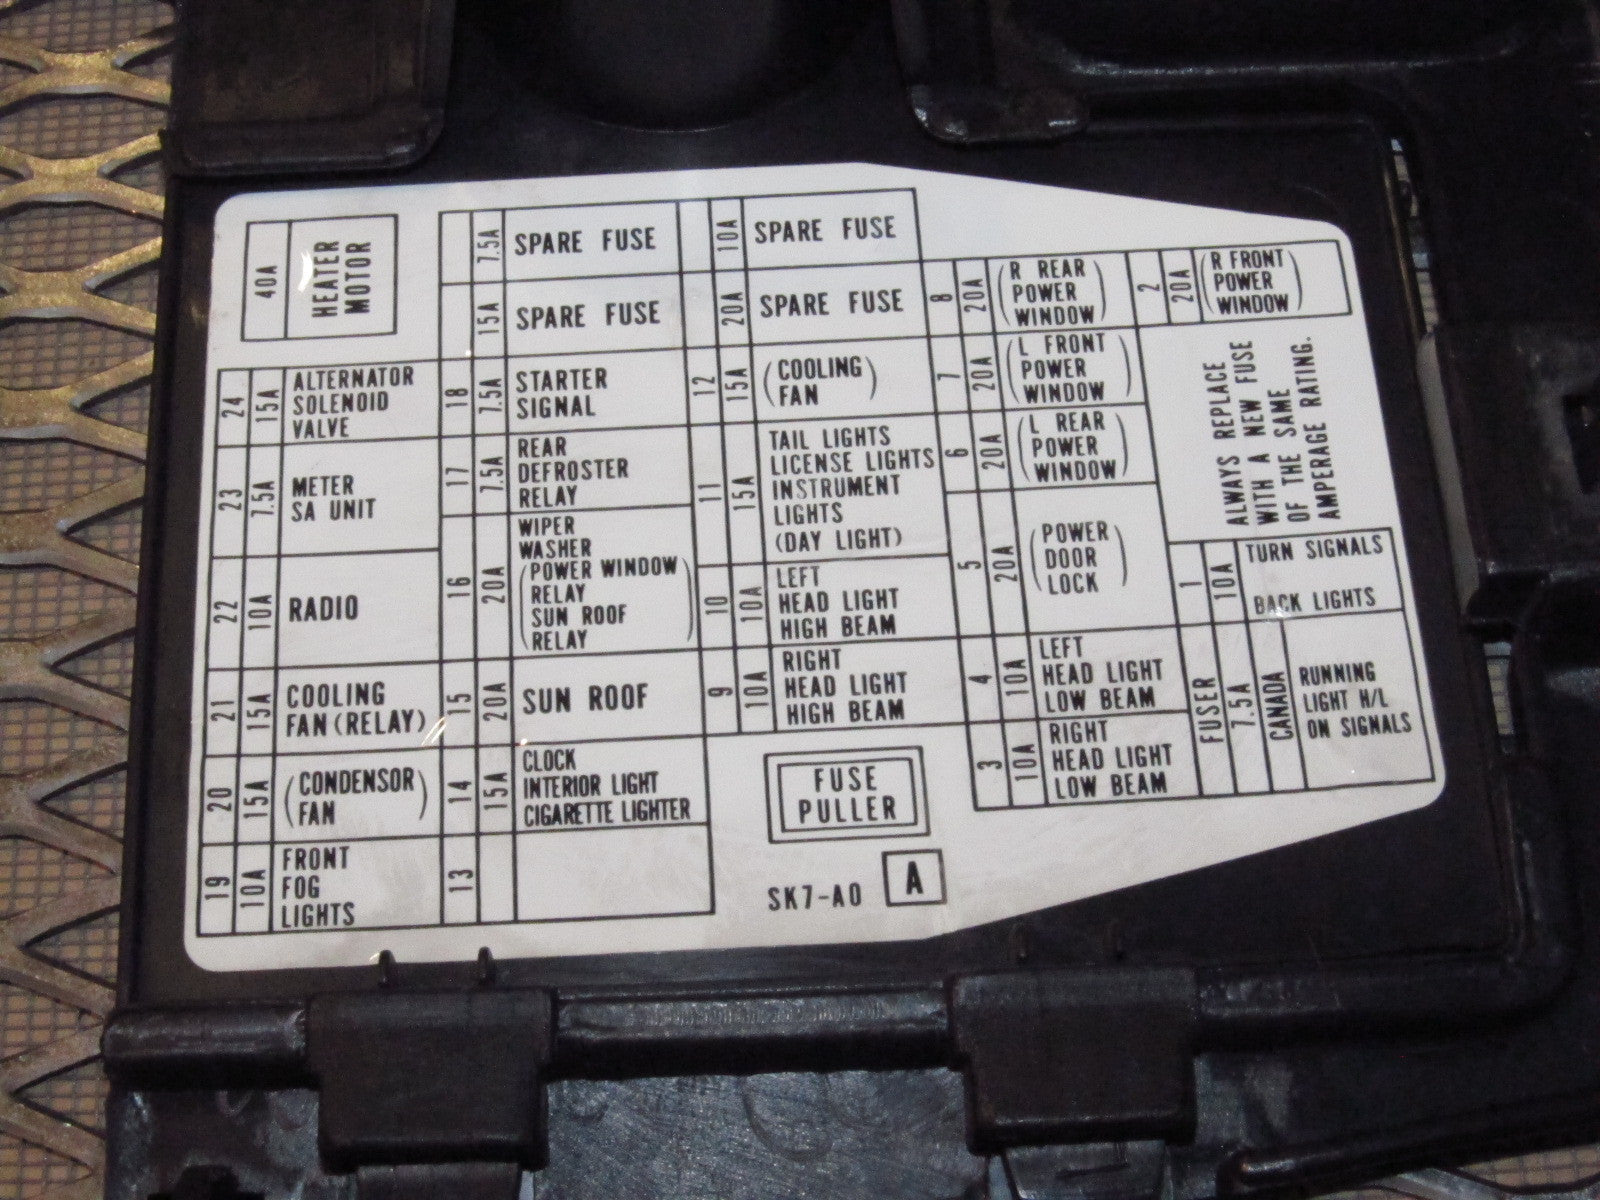 1990 Acura Integra Fuse Box Completed Wiring Diagrams 2001 Celica Diagram Cdn Shopify Com S Files 1 0366 9149 Products Img 2 Toyota